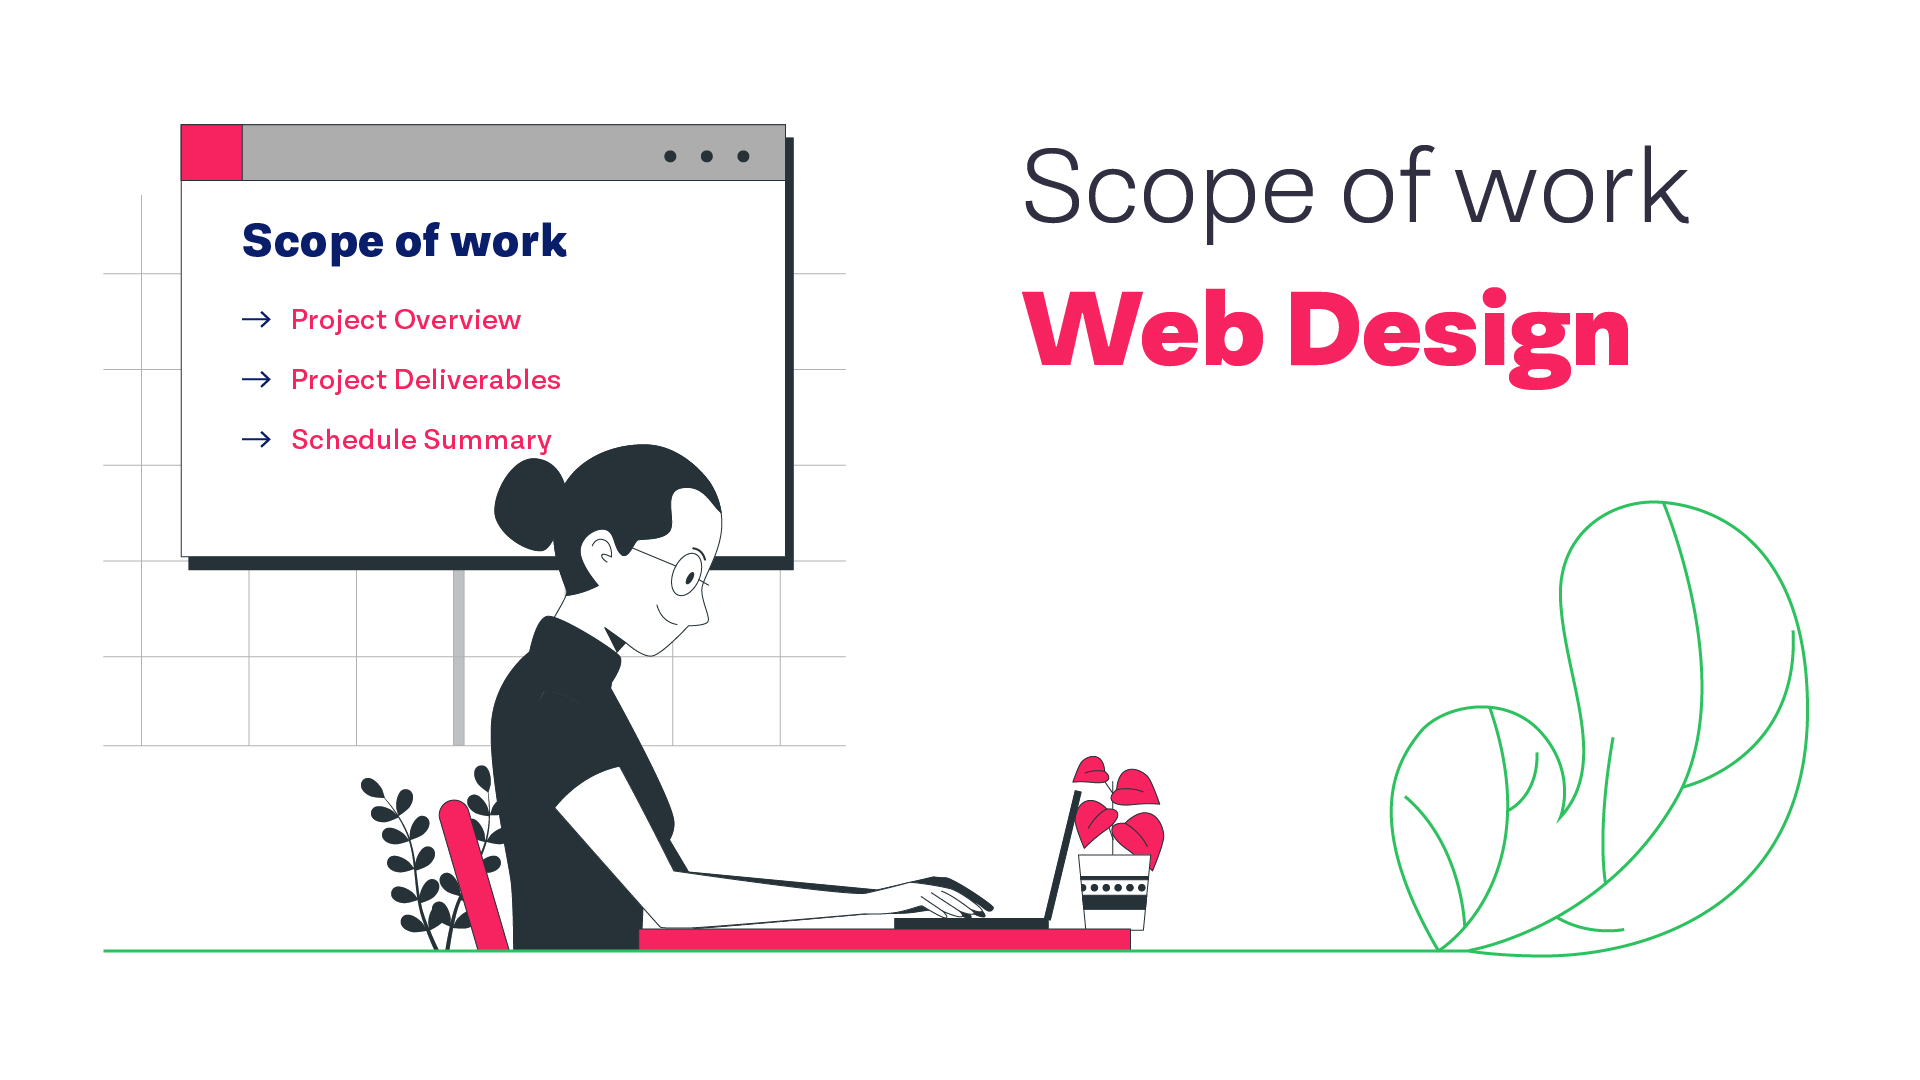 Creating Scope of Work Documents for Your Website Design Clients the Right Way 1 01